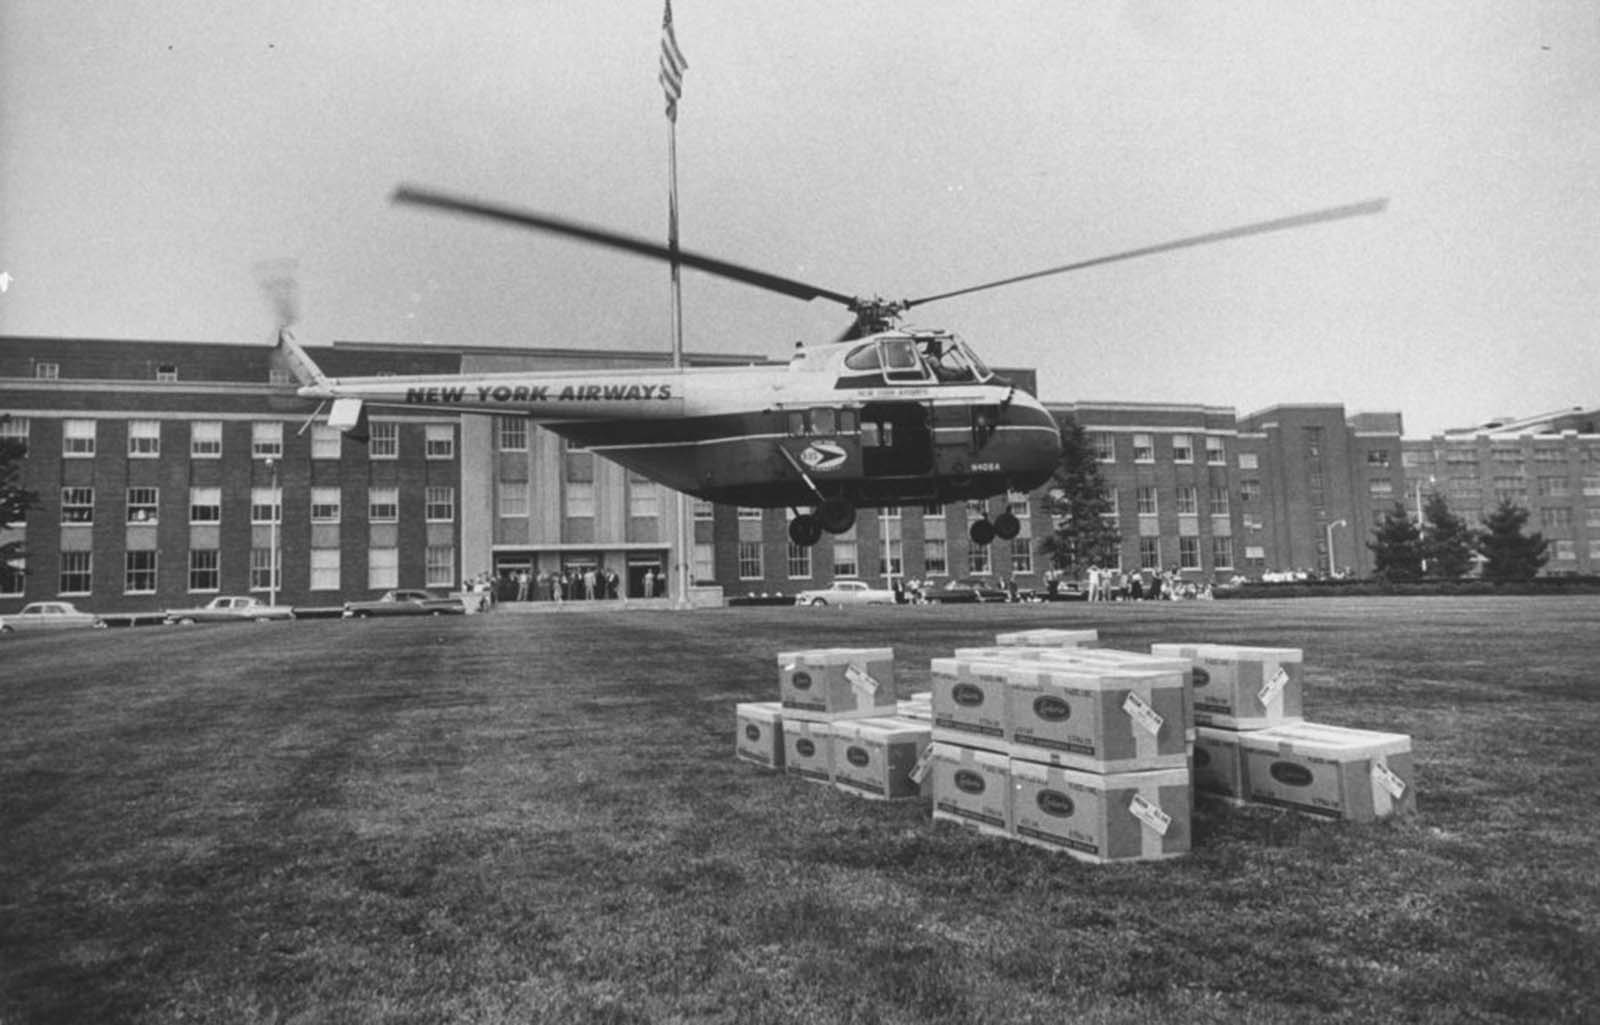 Crates of flu vaccine were rushed by helicopter from Cyanamid's Lederle Labs to New York.